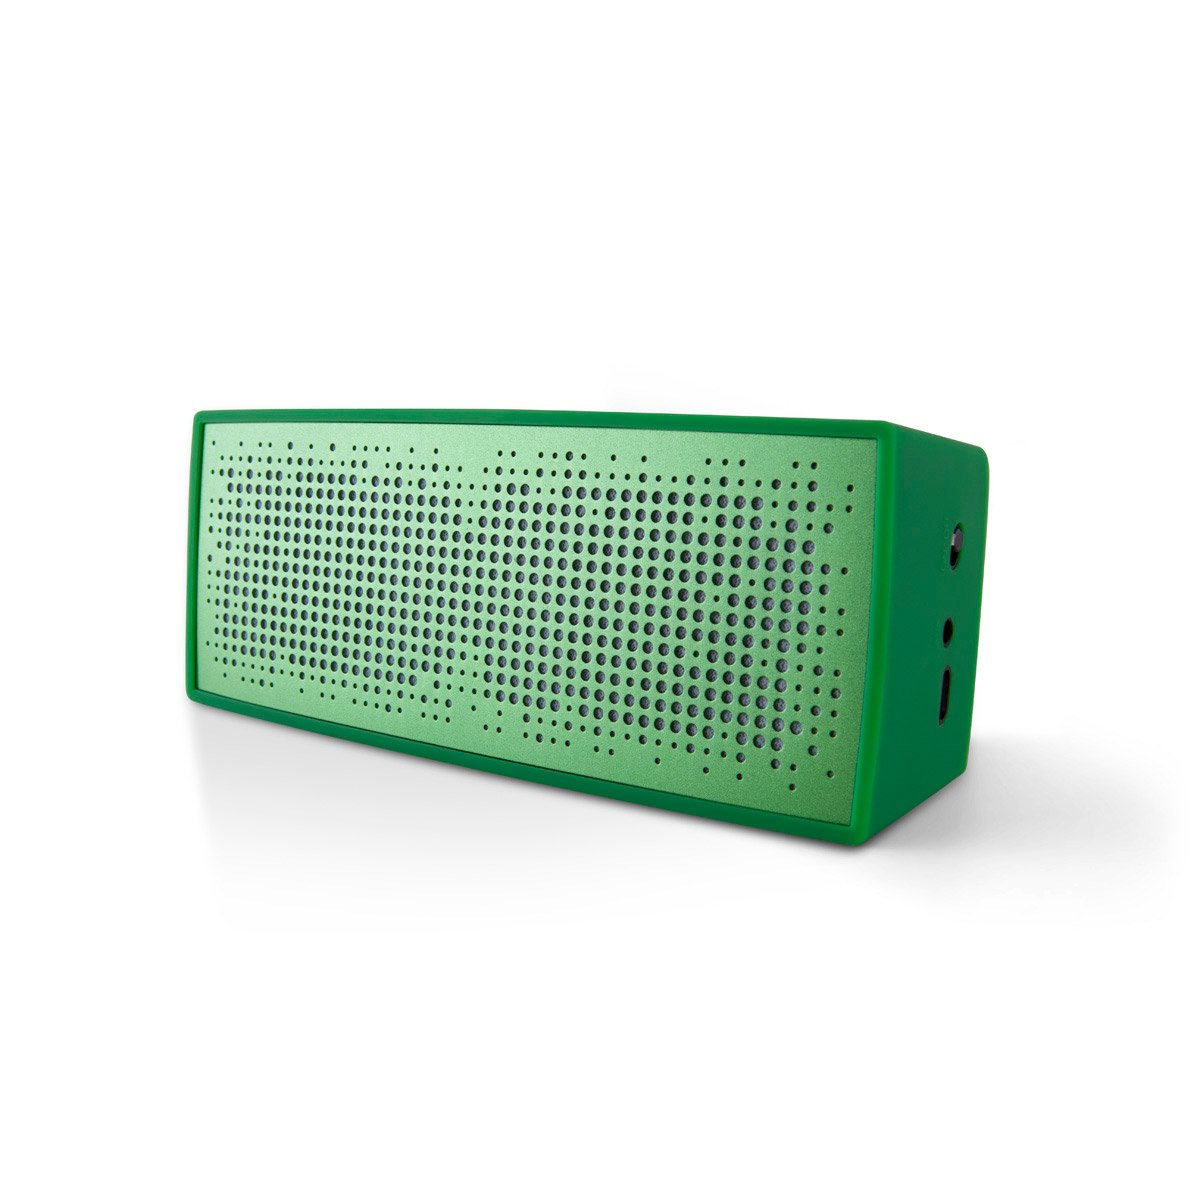 Antec SP1GRNEU - Altavoces con Bluetooth (EDR, batería 10 horas, 6 W, RMS 20Hz - 20KHz) color verde